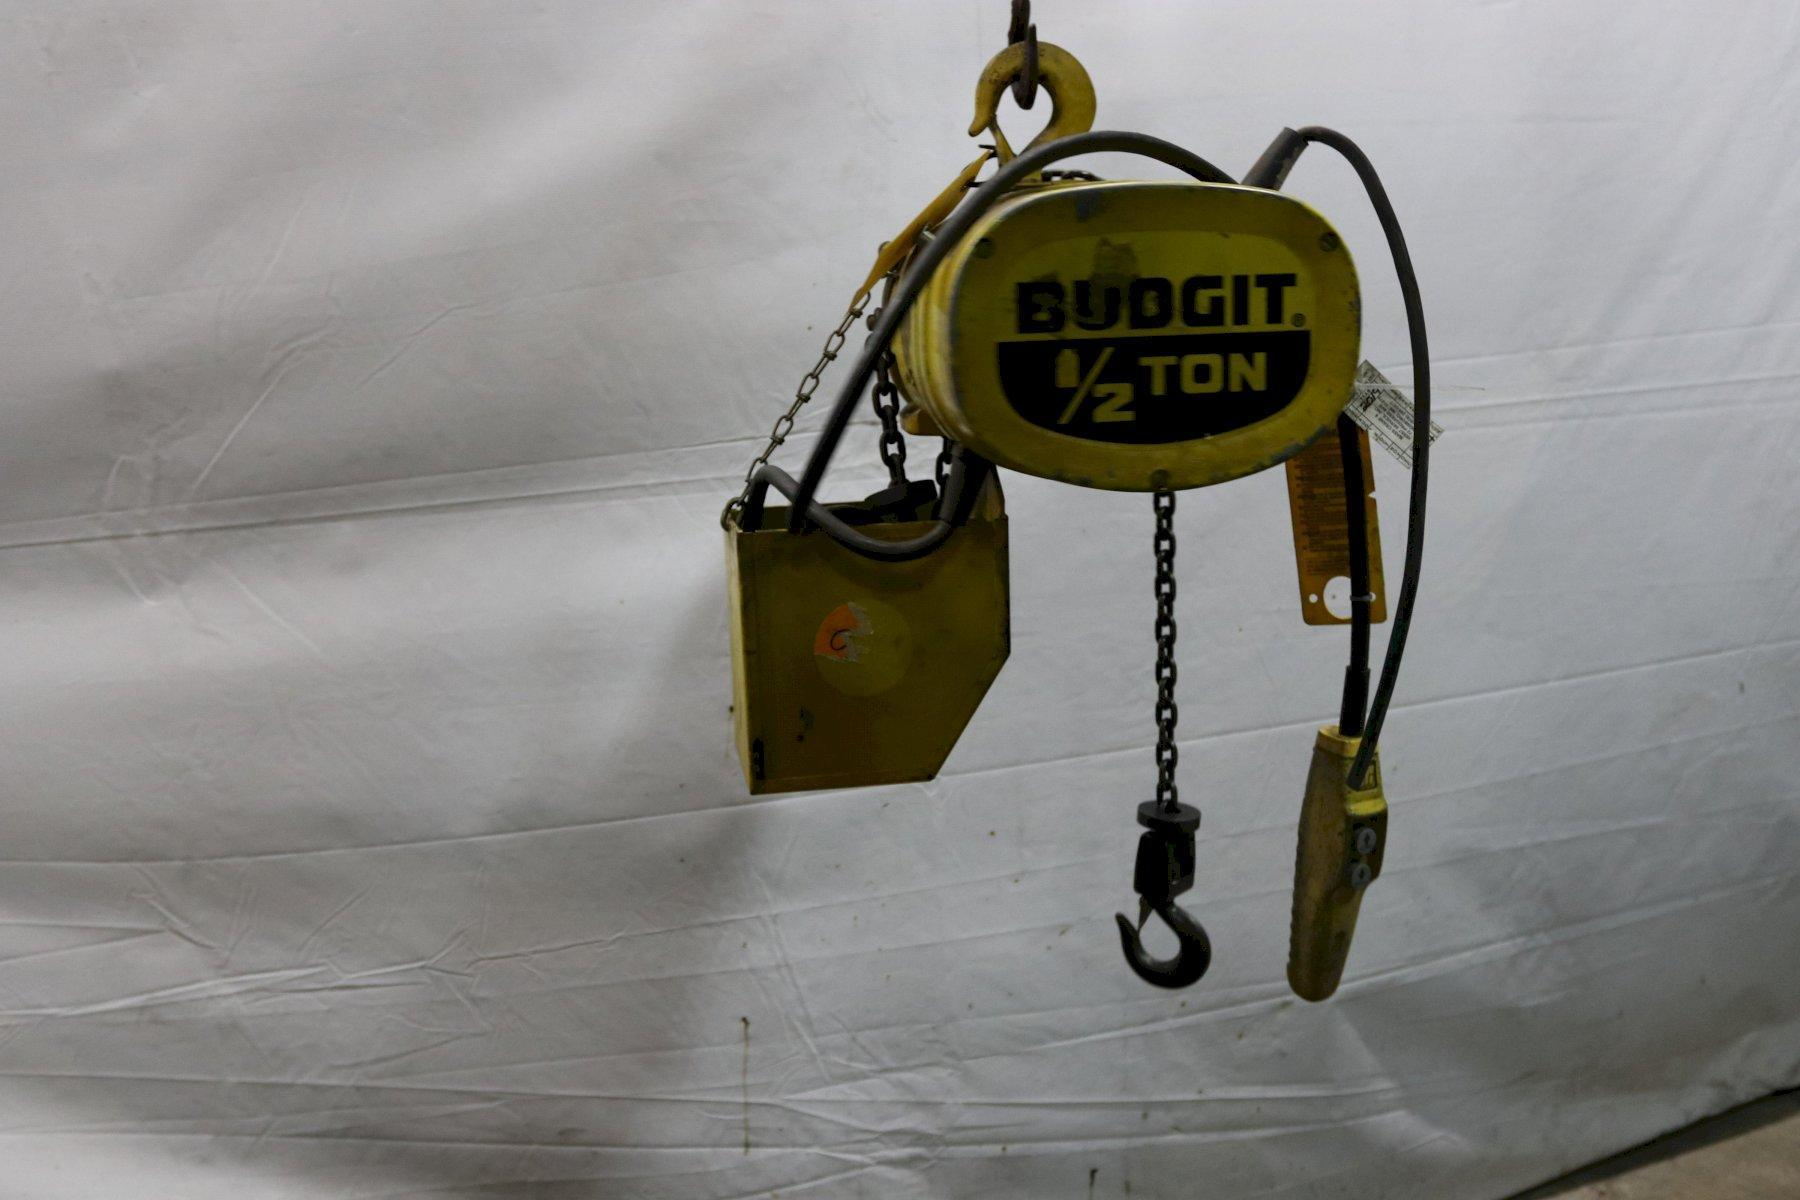 1/2 TON BUDGIT POWER CHAIN HOIST : STOCK #11991